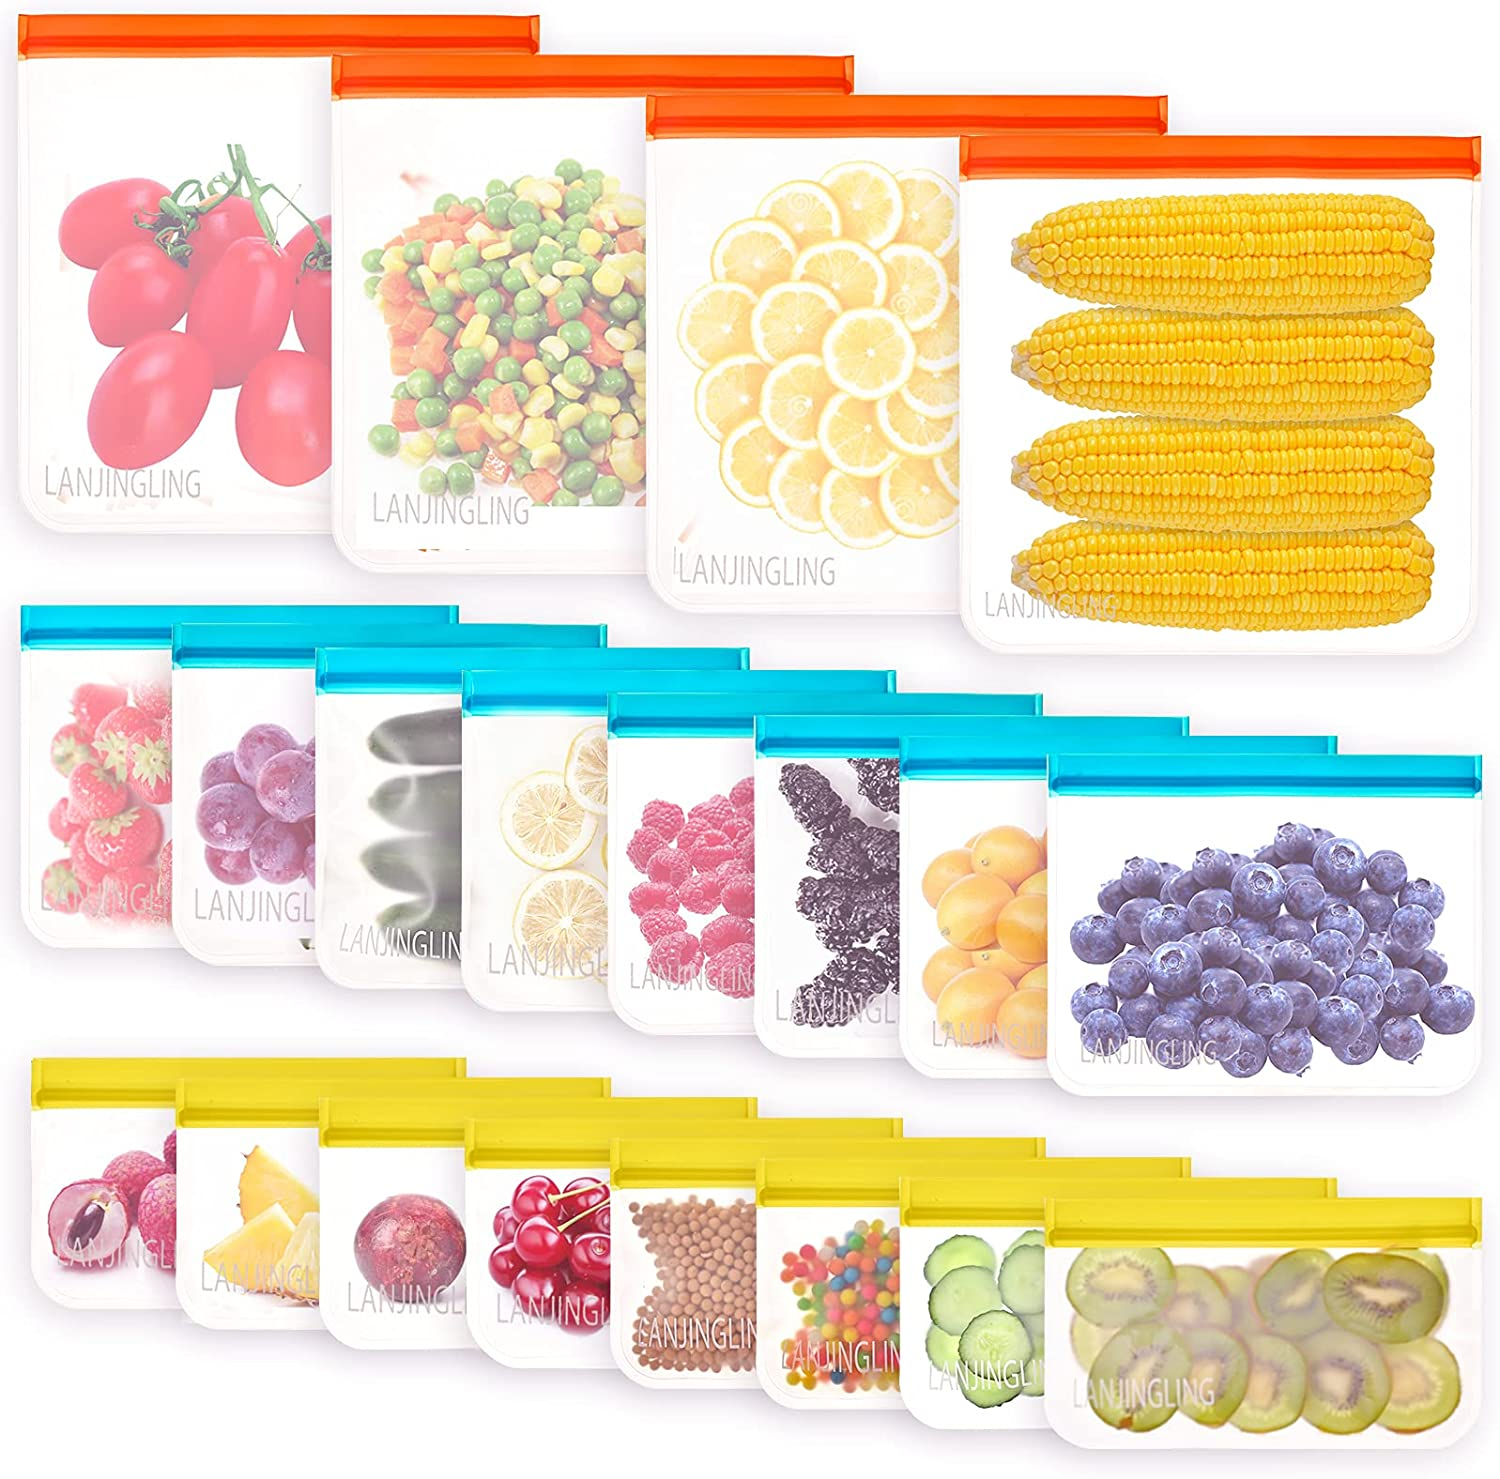 Reusable Food Storage Bags - 20 Pack BPA Free Freezer Bags (4 Reusable Gallon Bags + 8 Reusable Sandwich Bags + 8 Kids Snack Bags), Super Thick, Leak Proof Resealable Lunch Bag for Meat Fruit Veggies